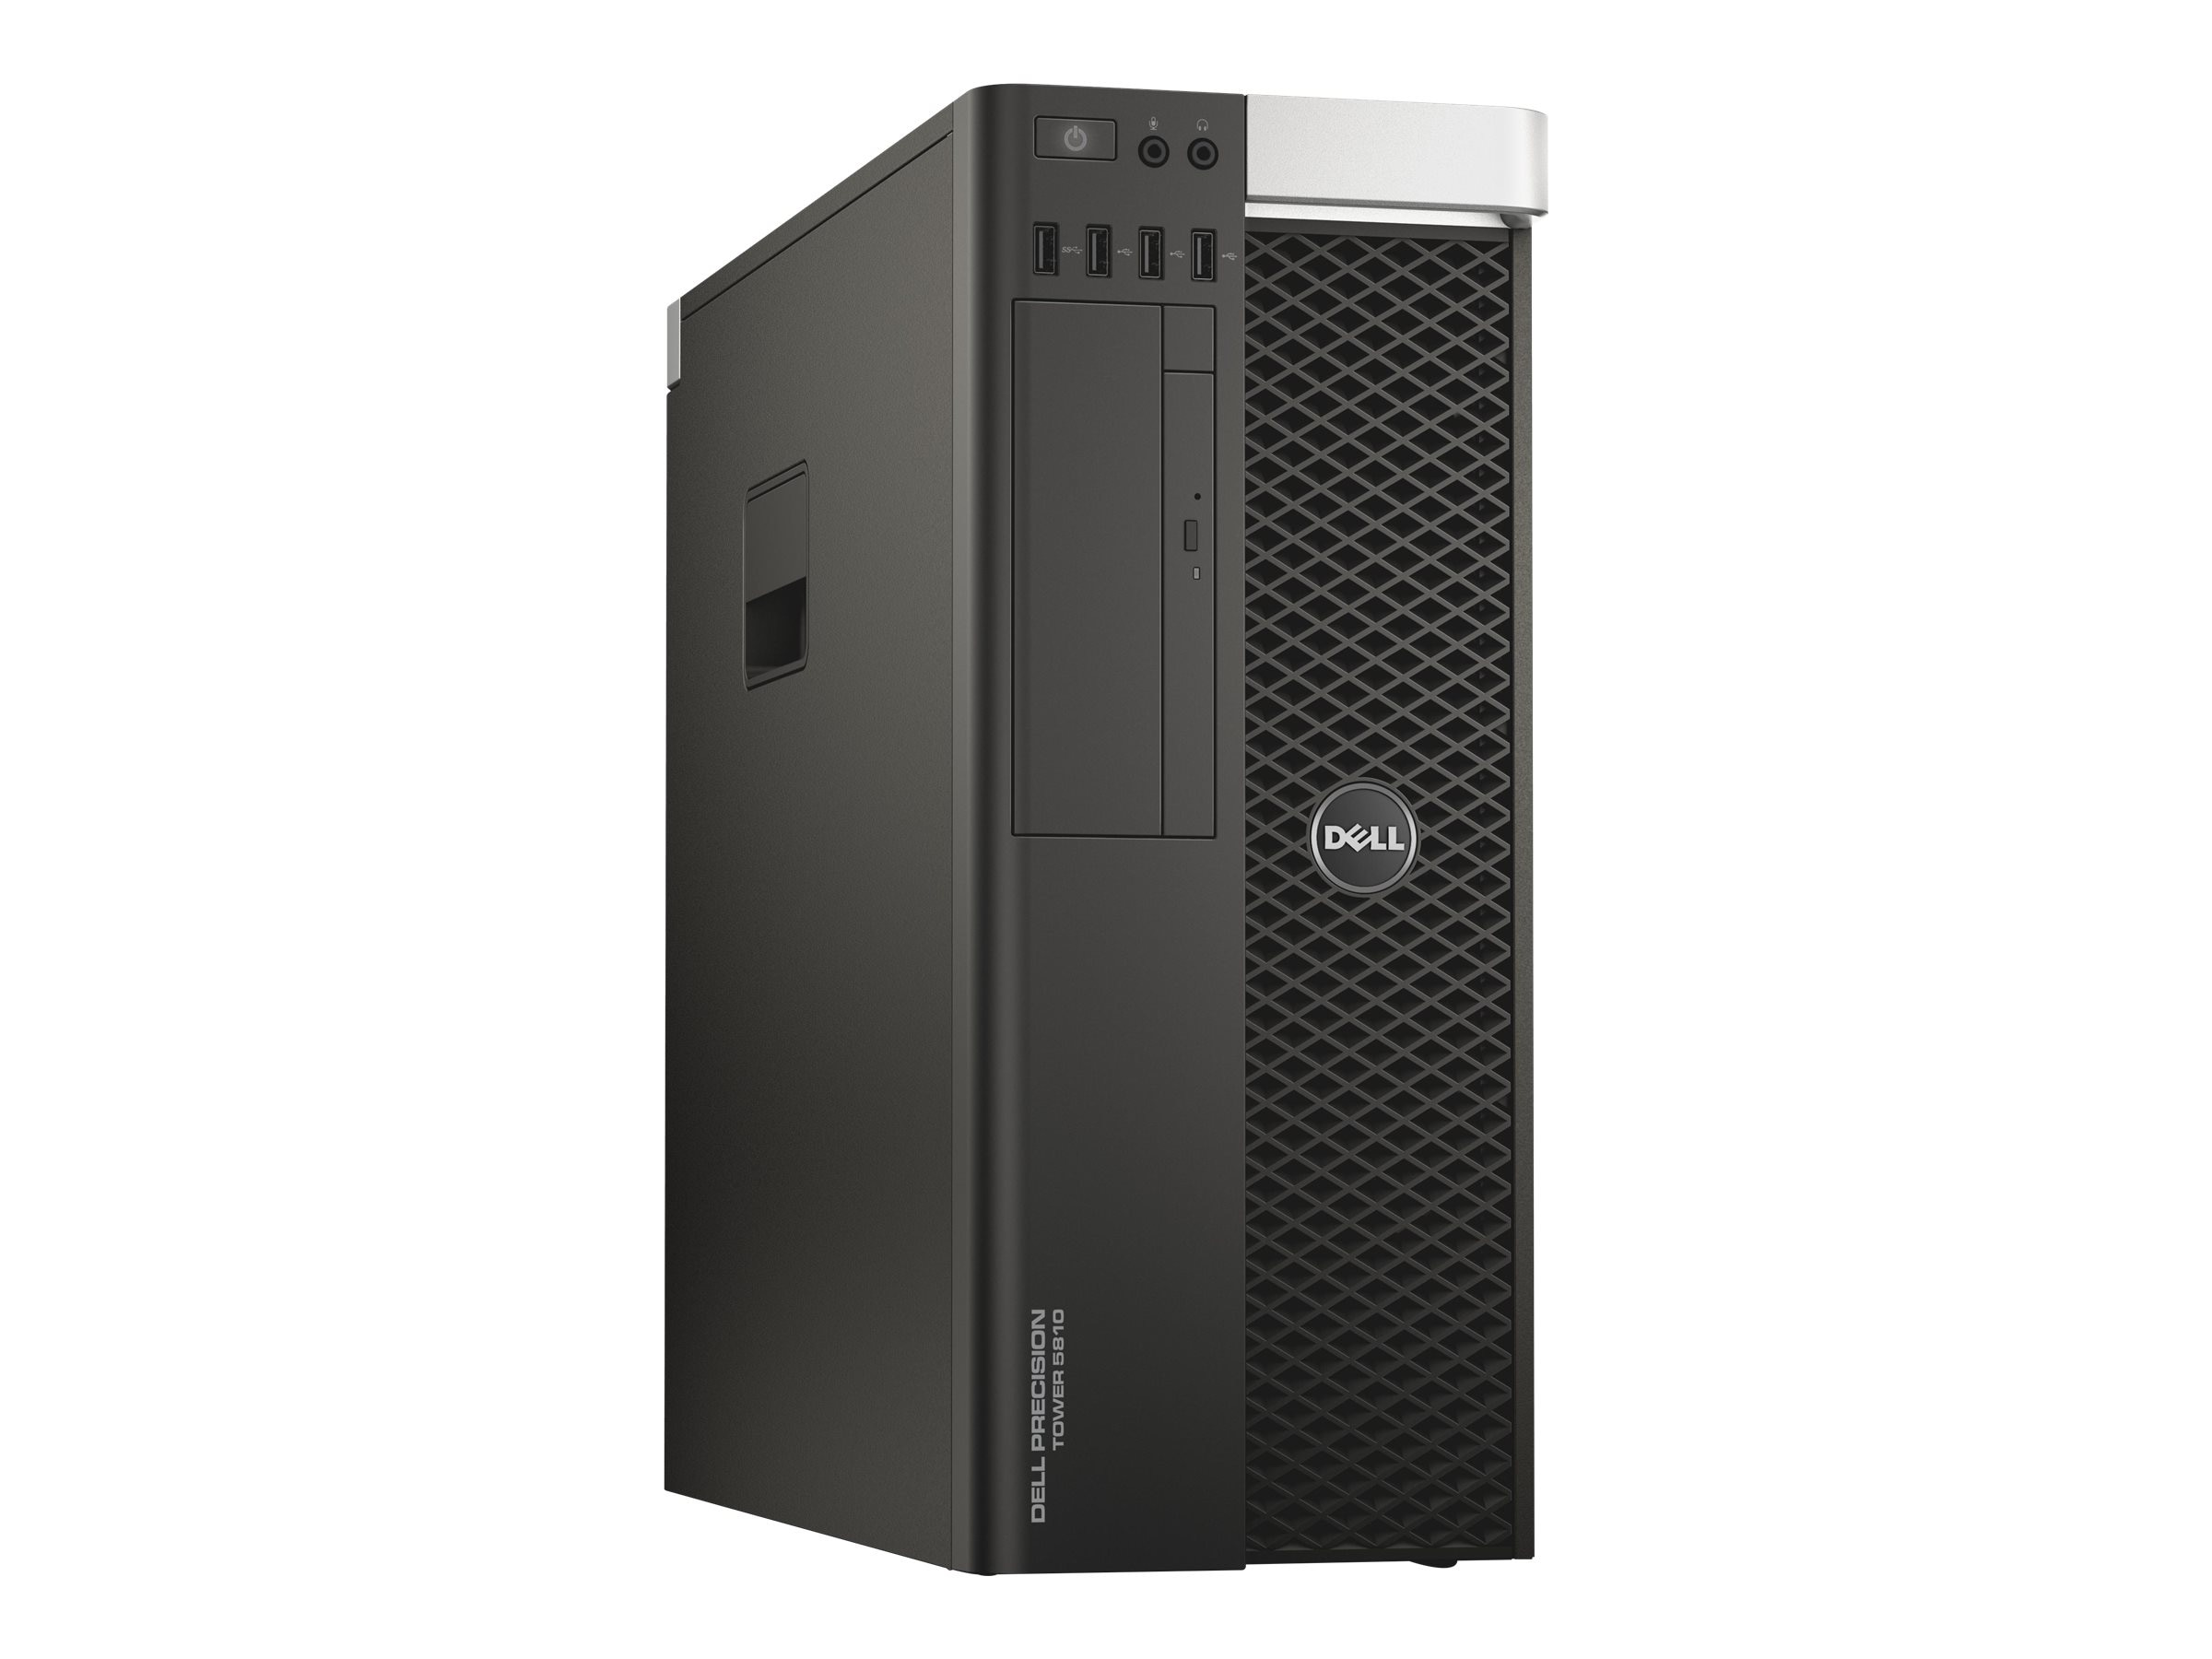 Dell Precision 5810 Tower Xeon QC E5-1620 v3 3.5GHz 8GB 1TB K620 DVD-ROM GbE W7P64-W10P, 7JT26